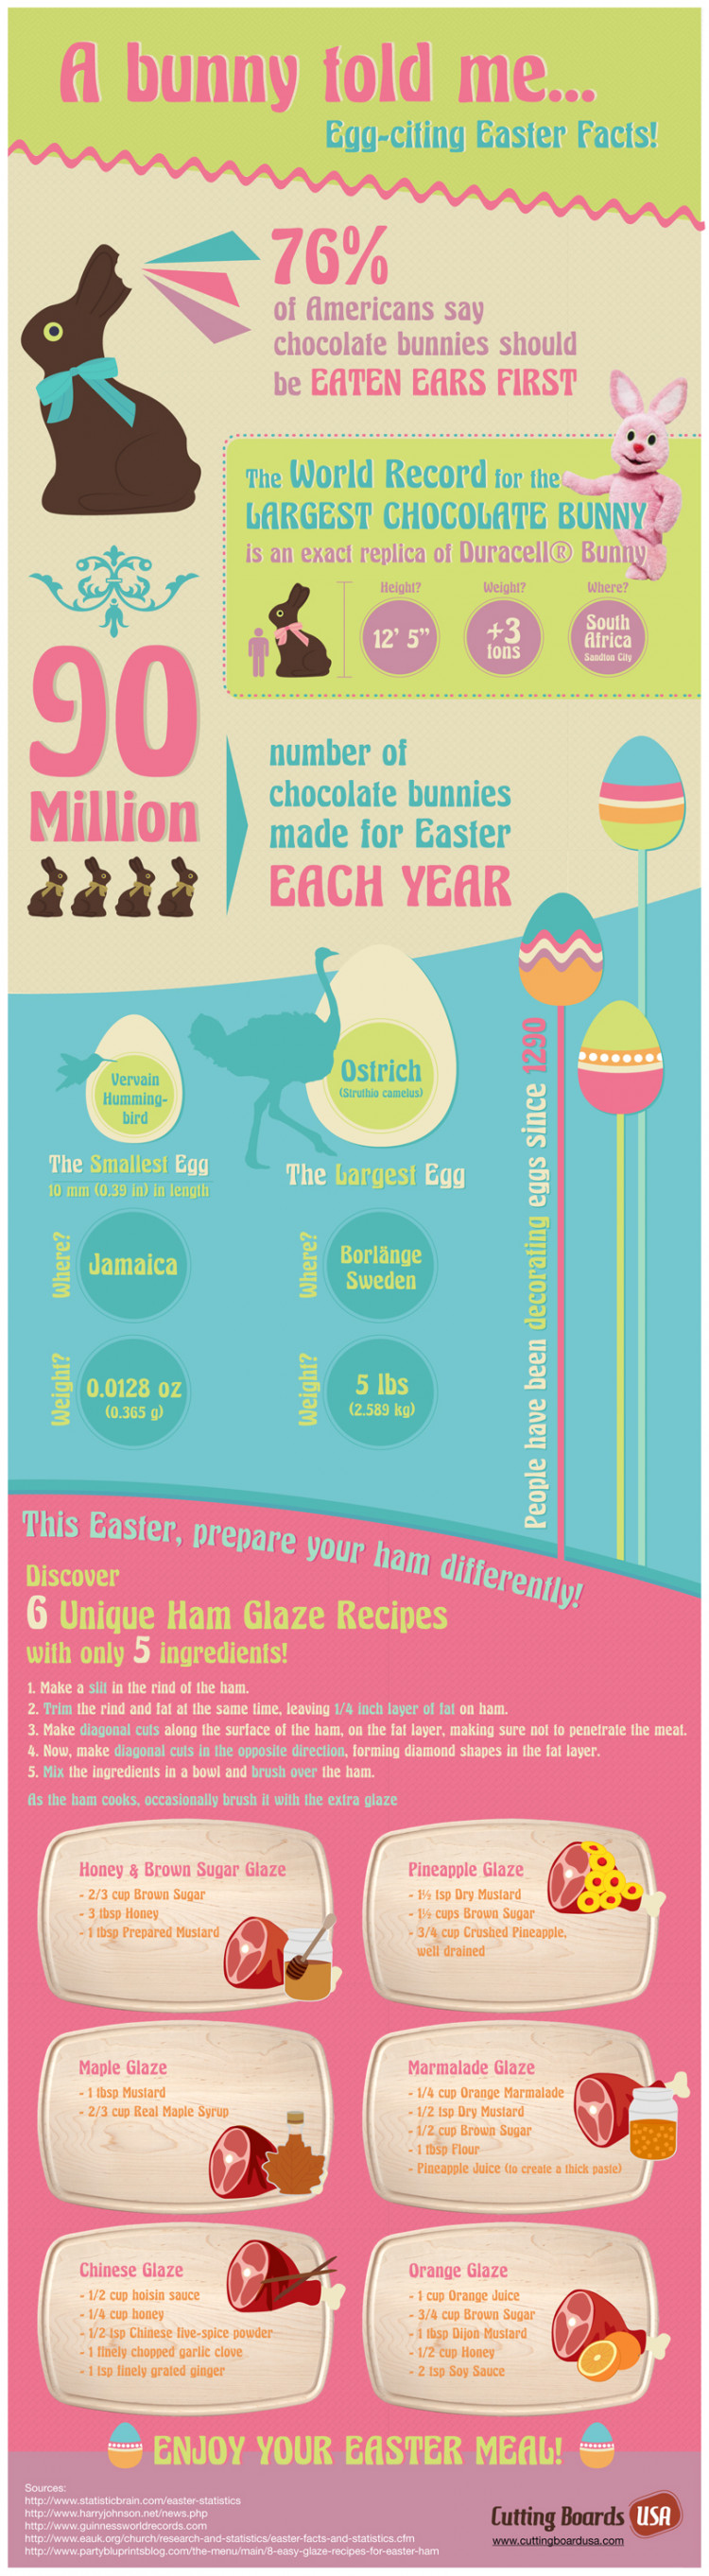 A bunny told me... Egg-citing Easter Facts!